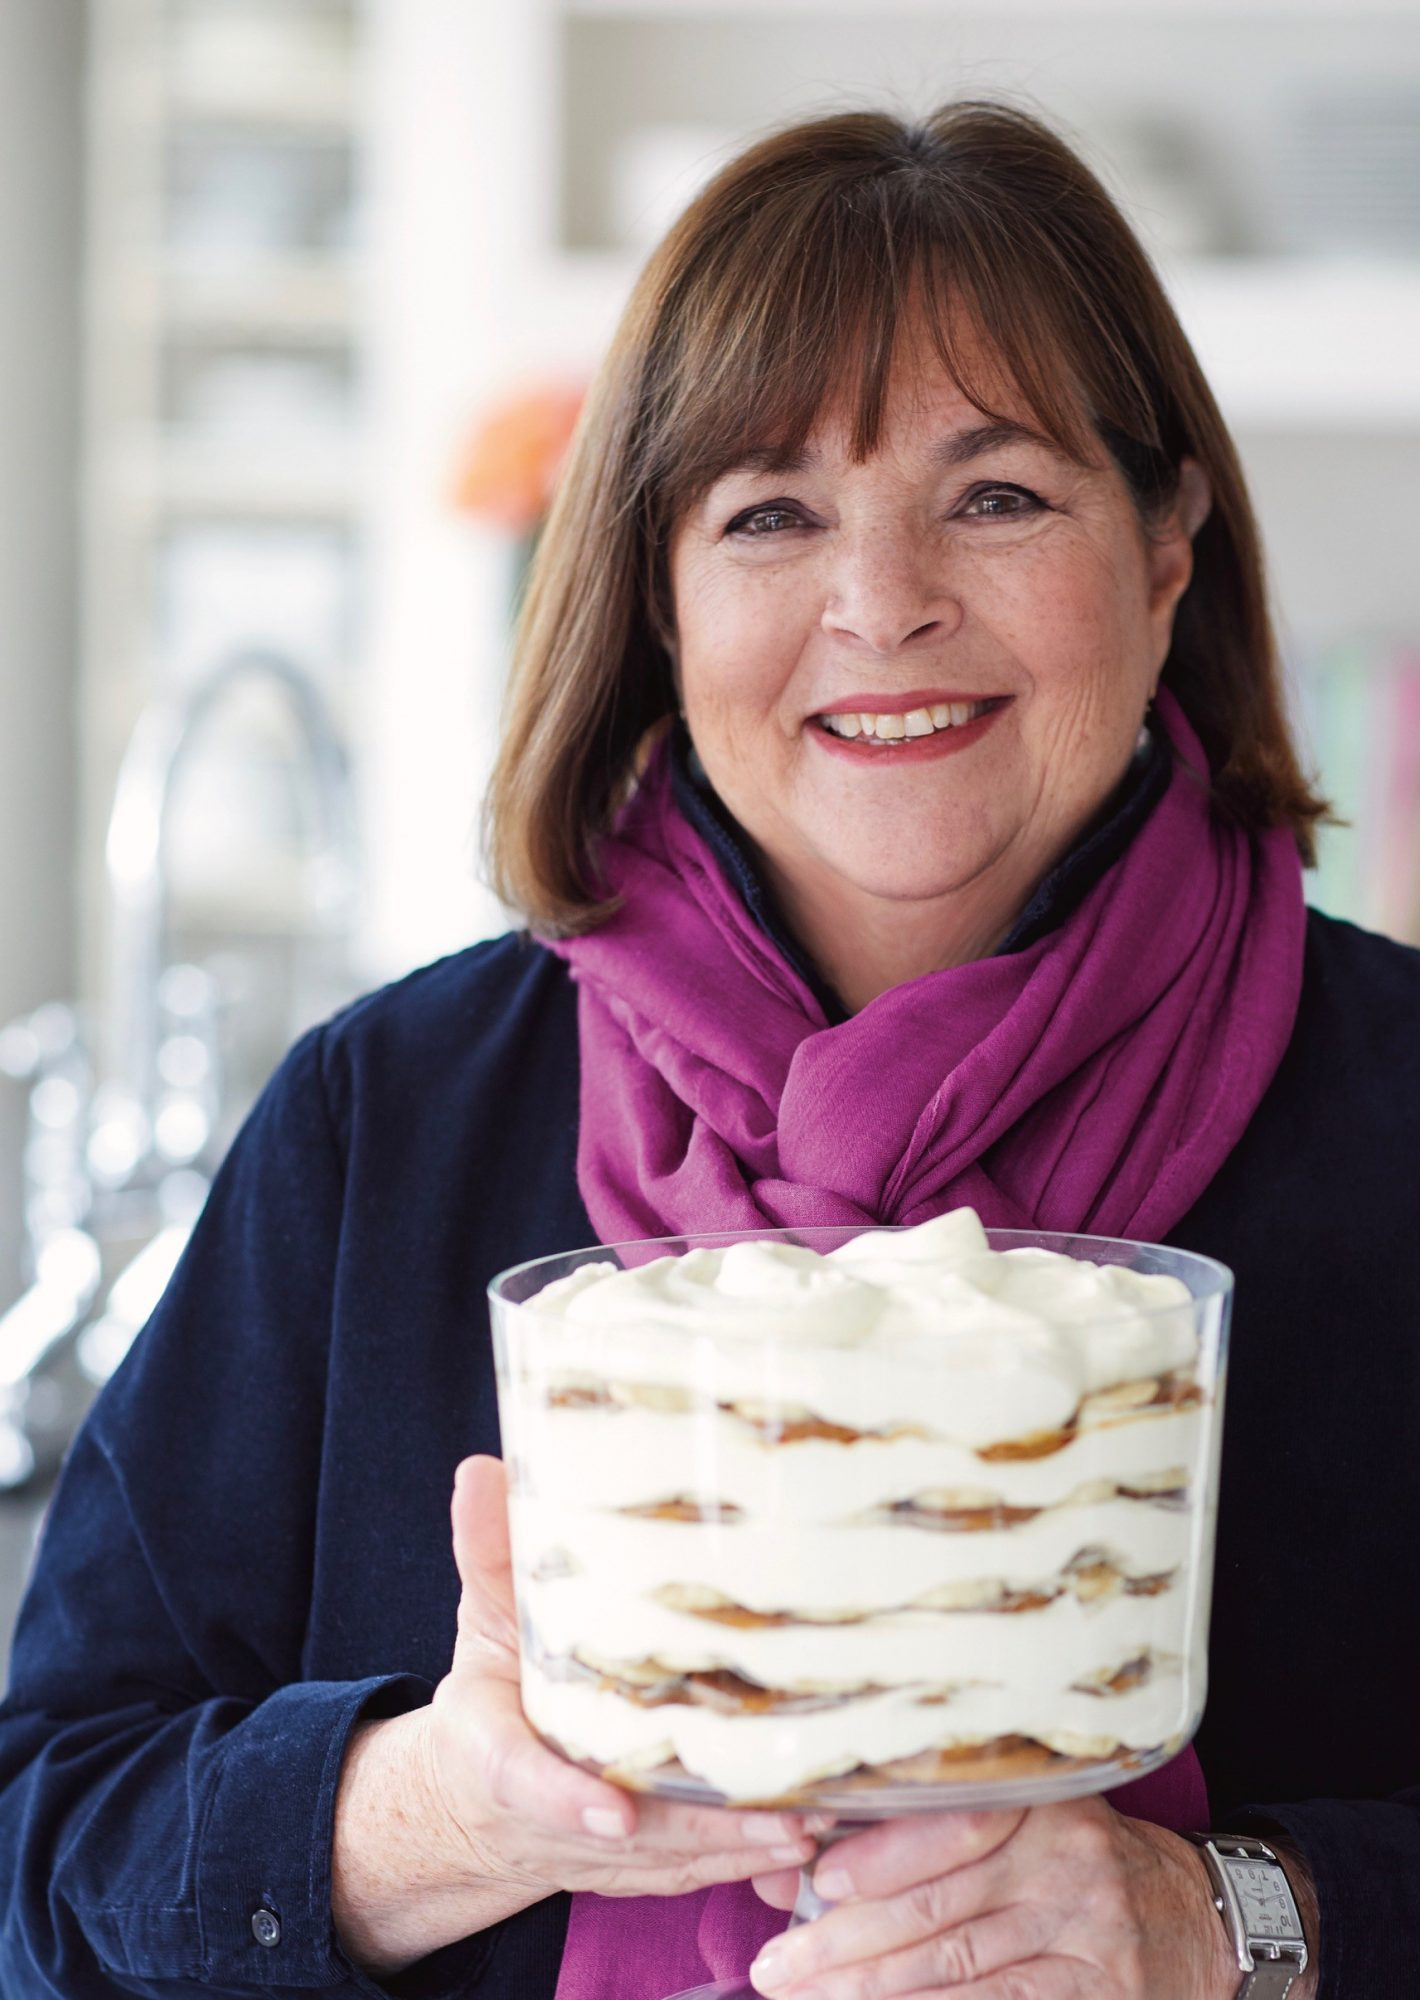 Homemade Podcast Episode 26 Ina Garten On Remembered Flavors Entertaining Friends And Simple Satisfying Meals Allrecipes